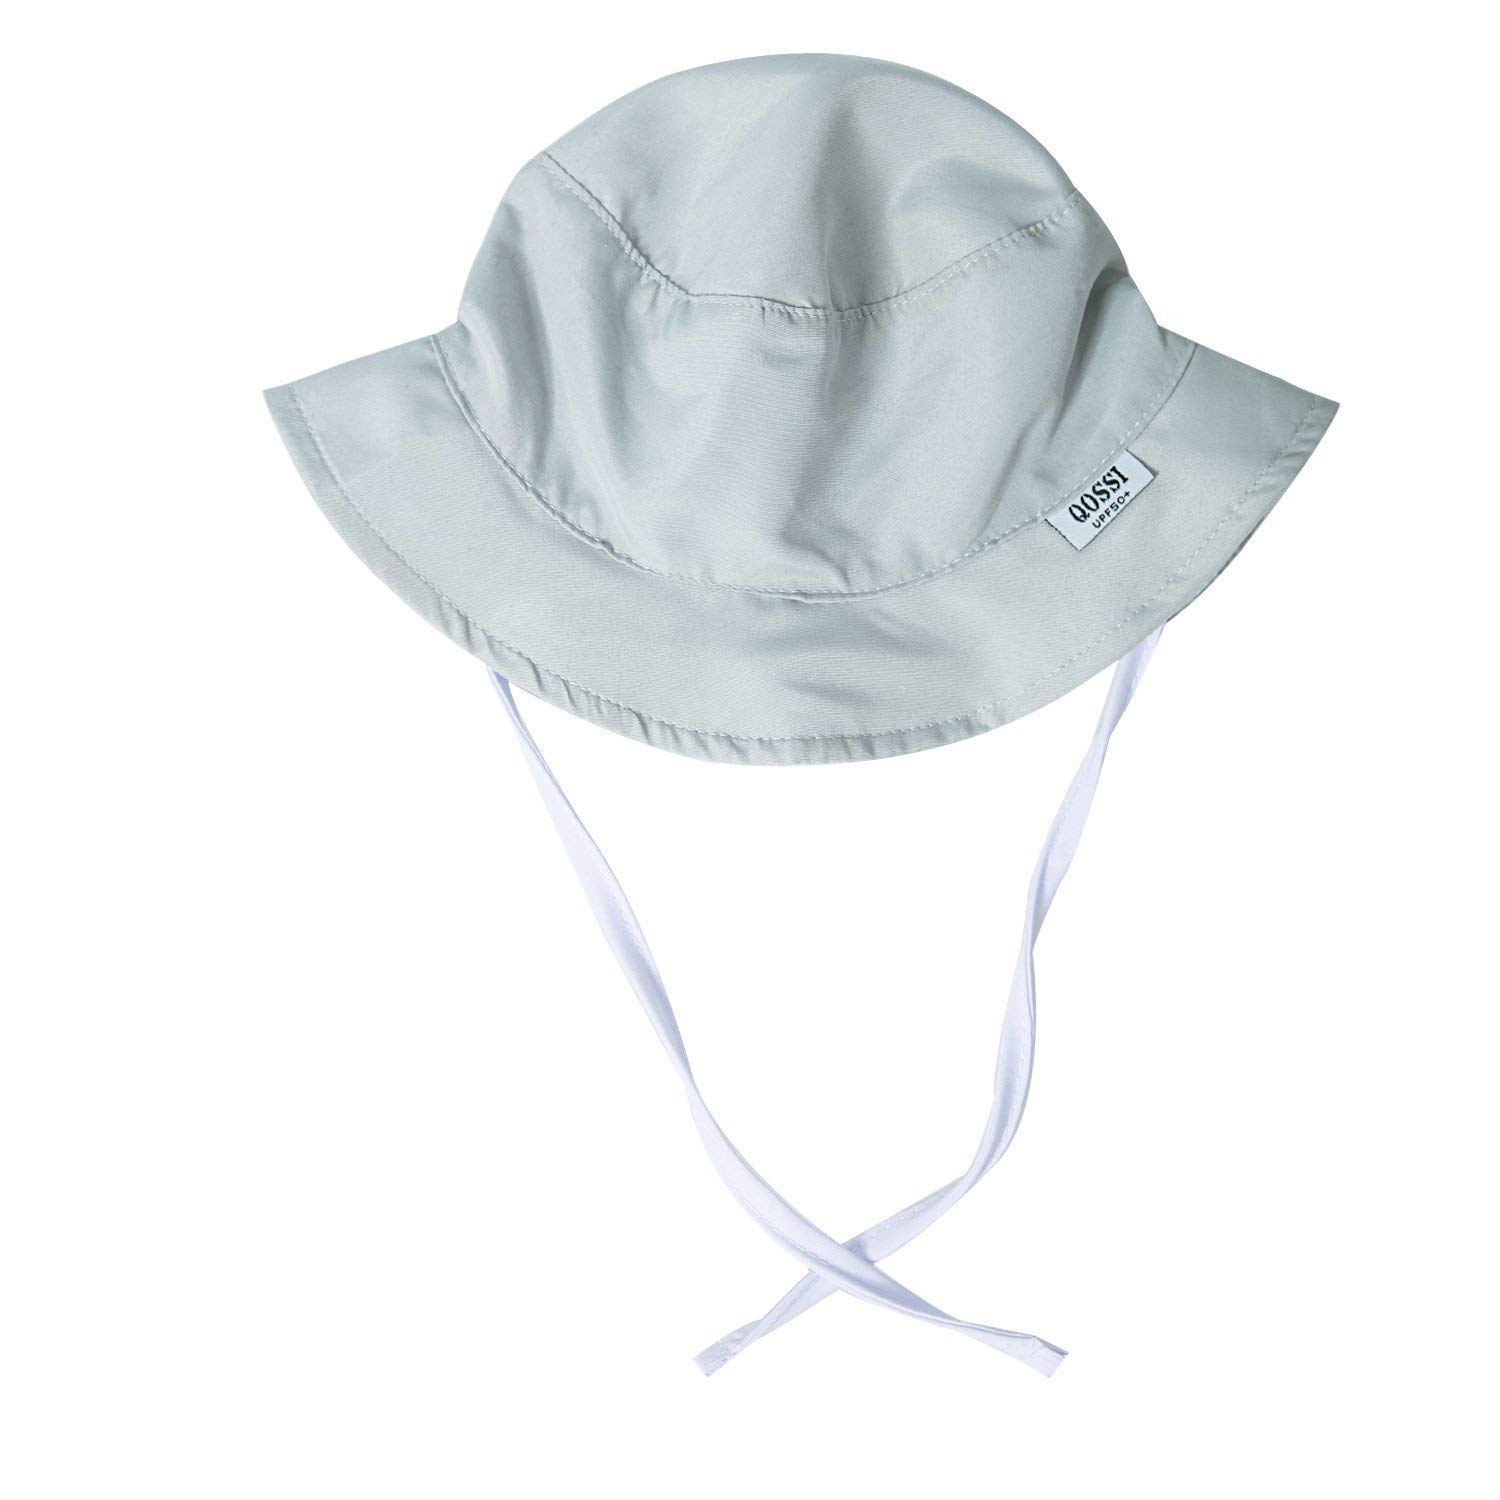 16ea360ee67 Comfortable Material£ºThis brim sun protection hat is made of 100%  polyester